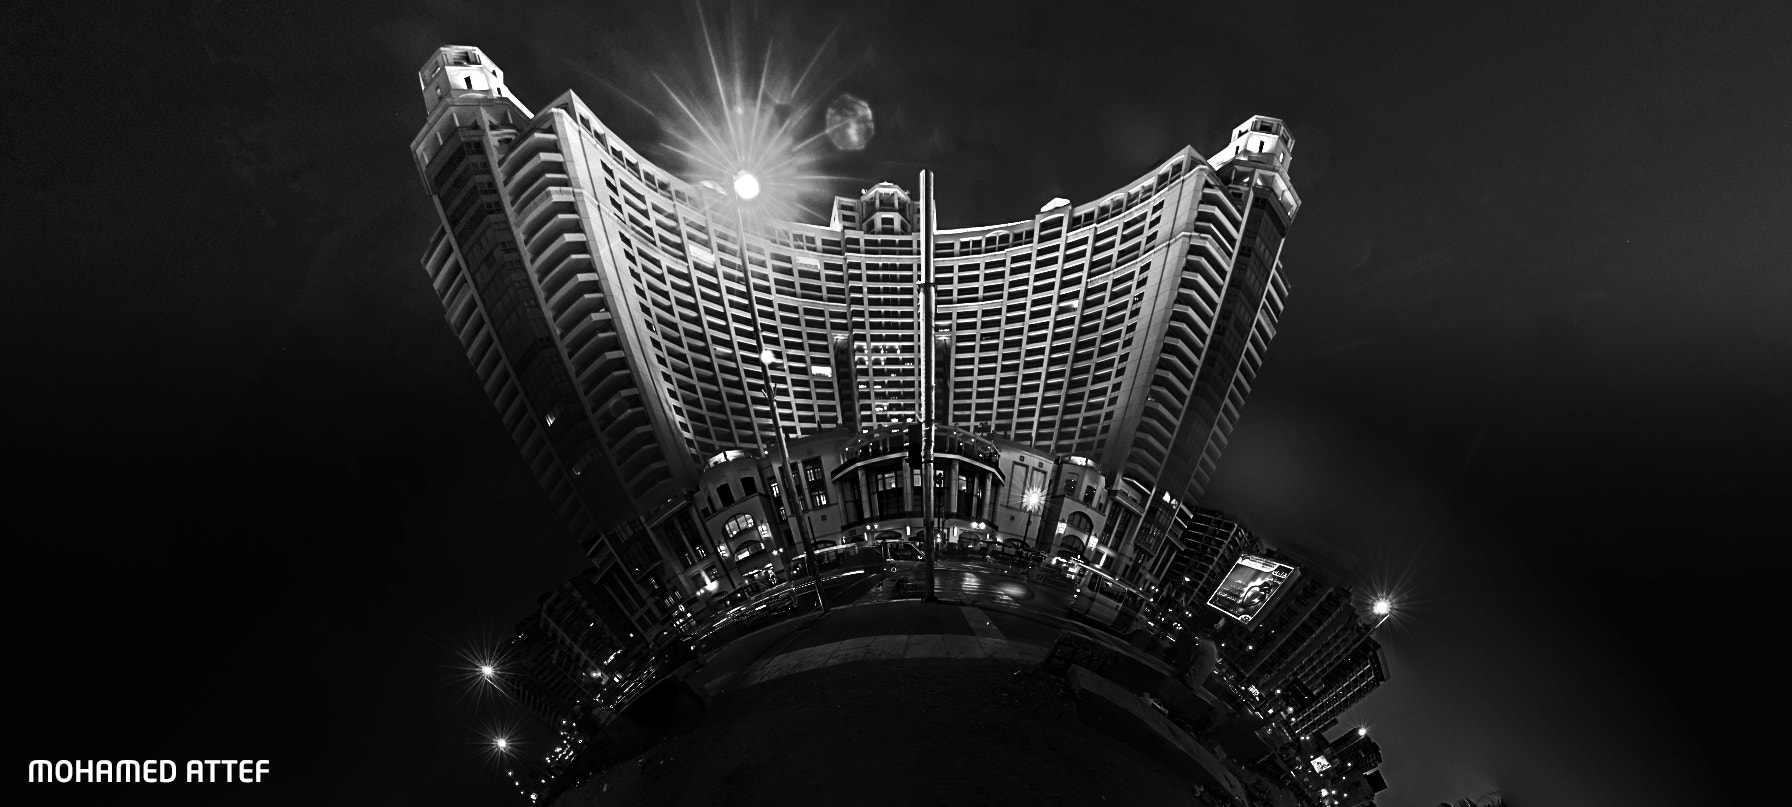 Photograph San Stefano Four Seasons Hotel by Mohamed Attef on 500px